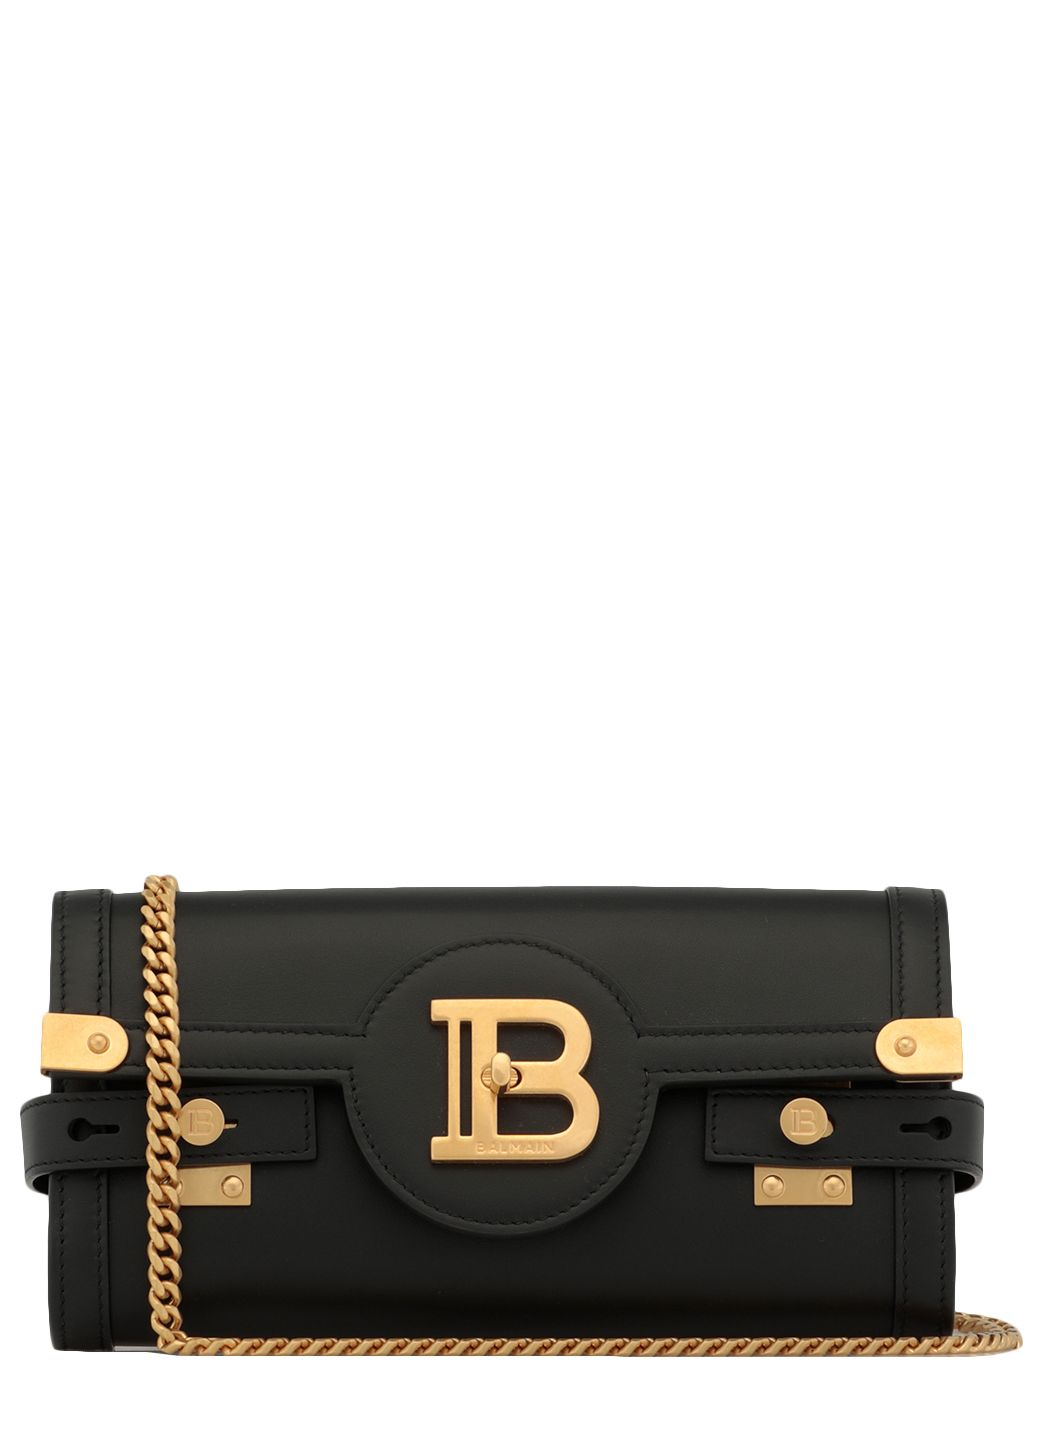 B-Buzz clutch bag